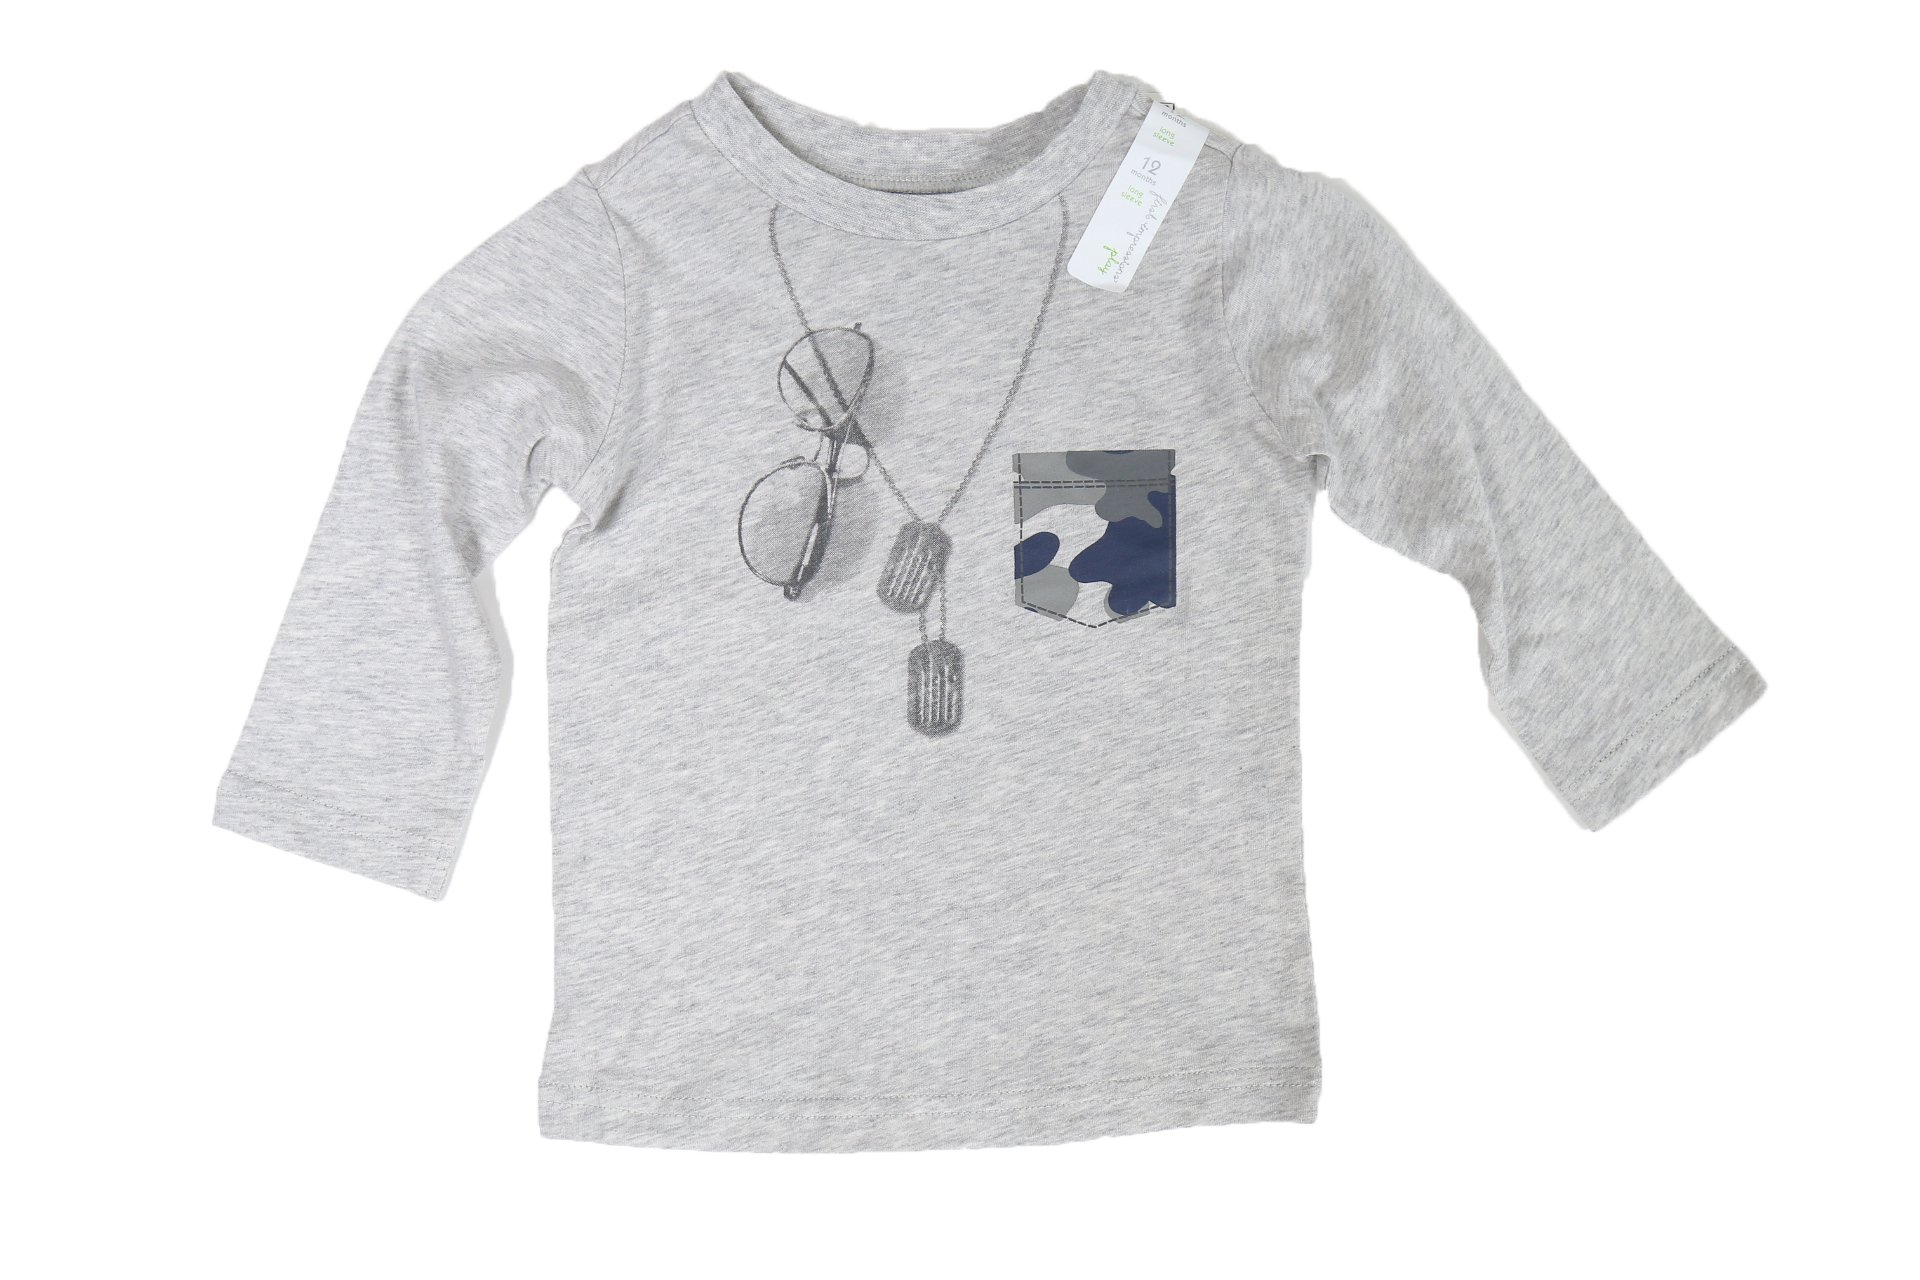 First Impressions Camo Sunglasses Graphic-Print T-Shirt, Baby Boys (18 Months) by First Impressions